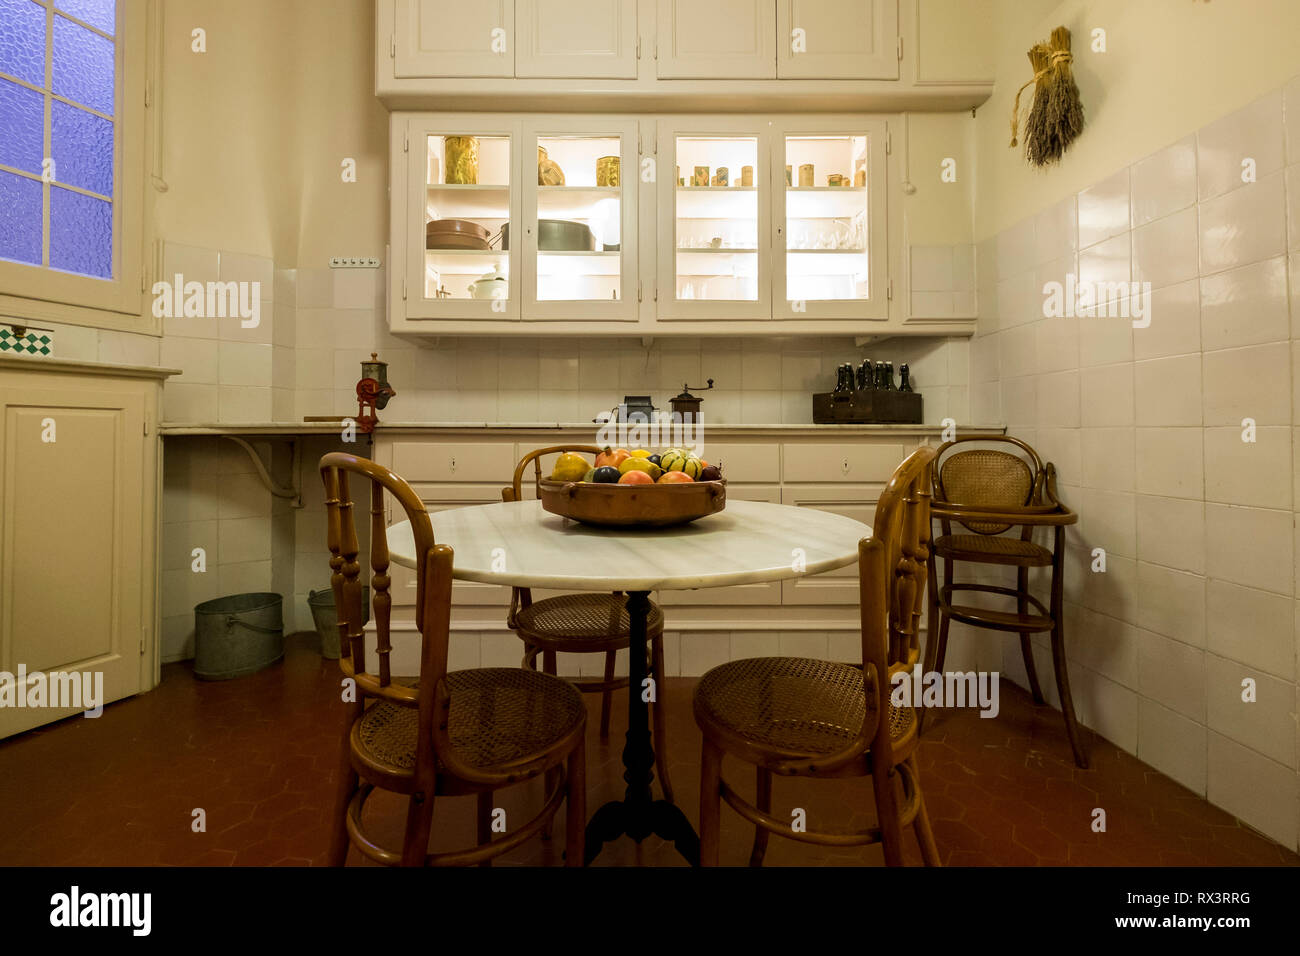 An eating area of a kitchen  in an apartment at Casa Mila in Barcelona, Spain. - Stock Image